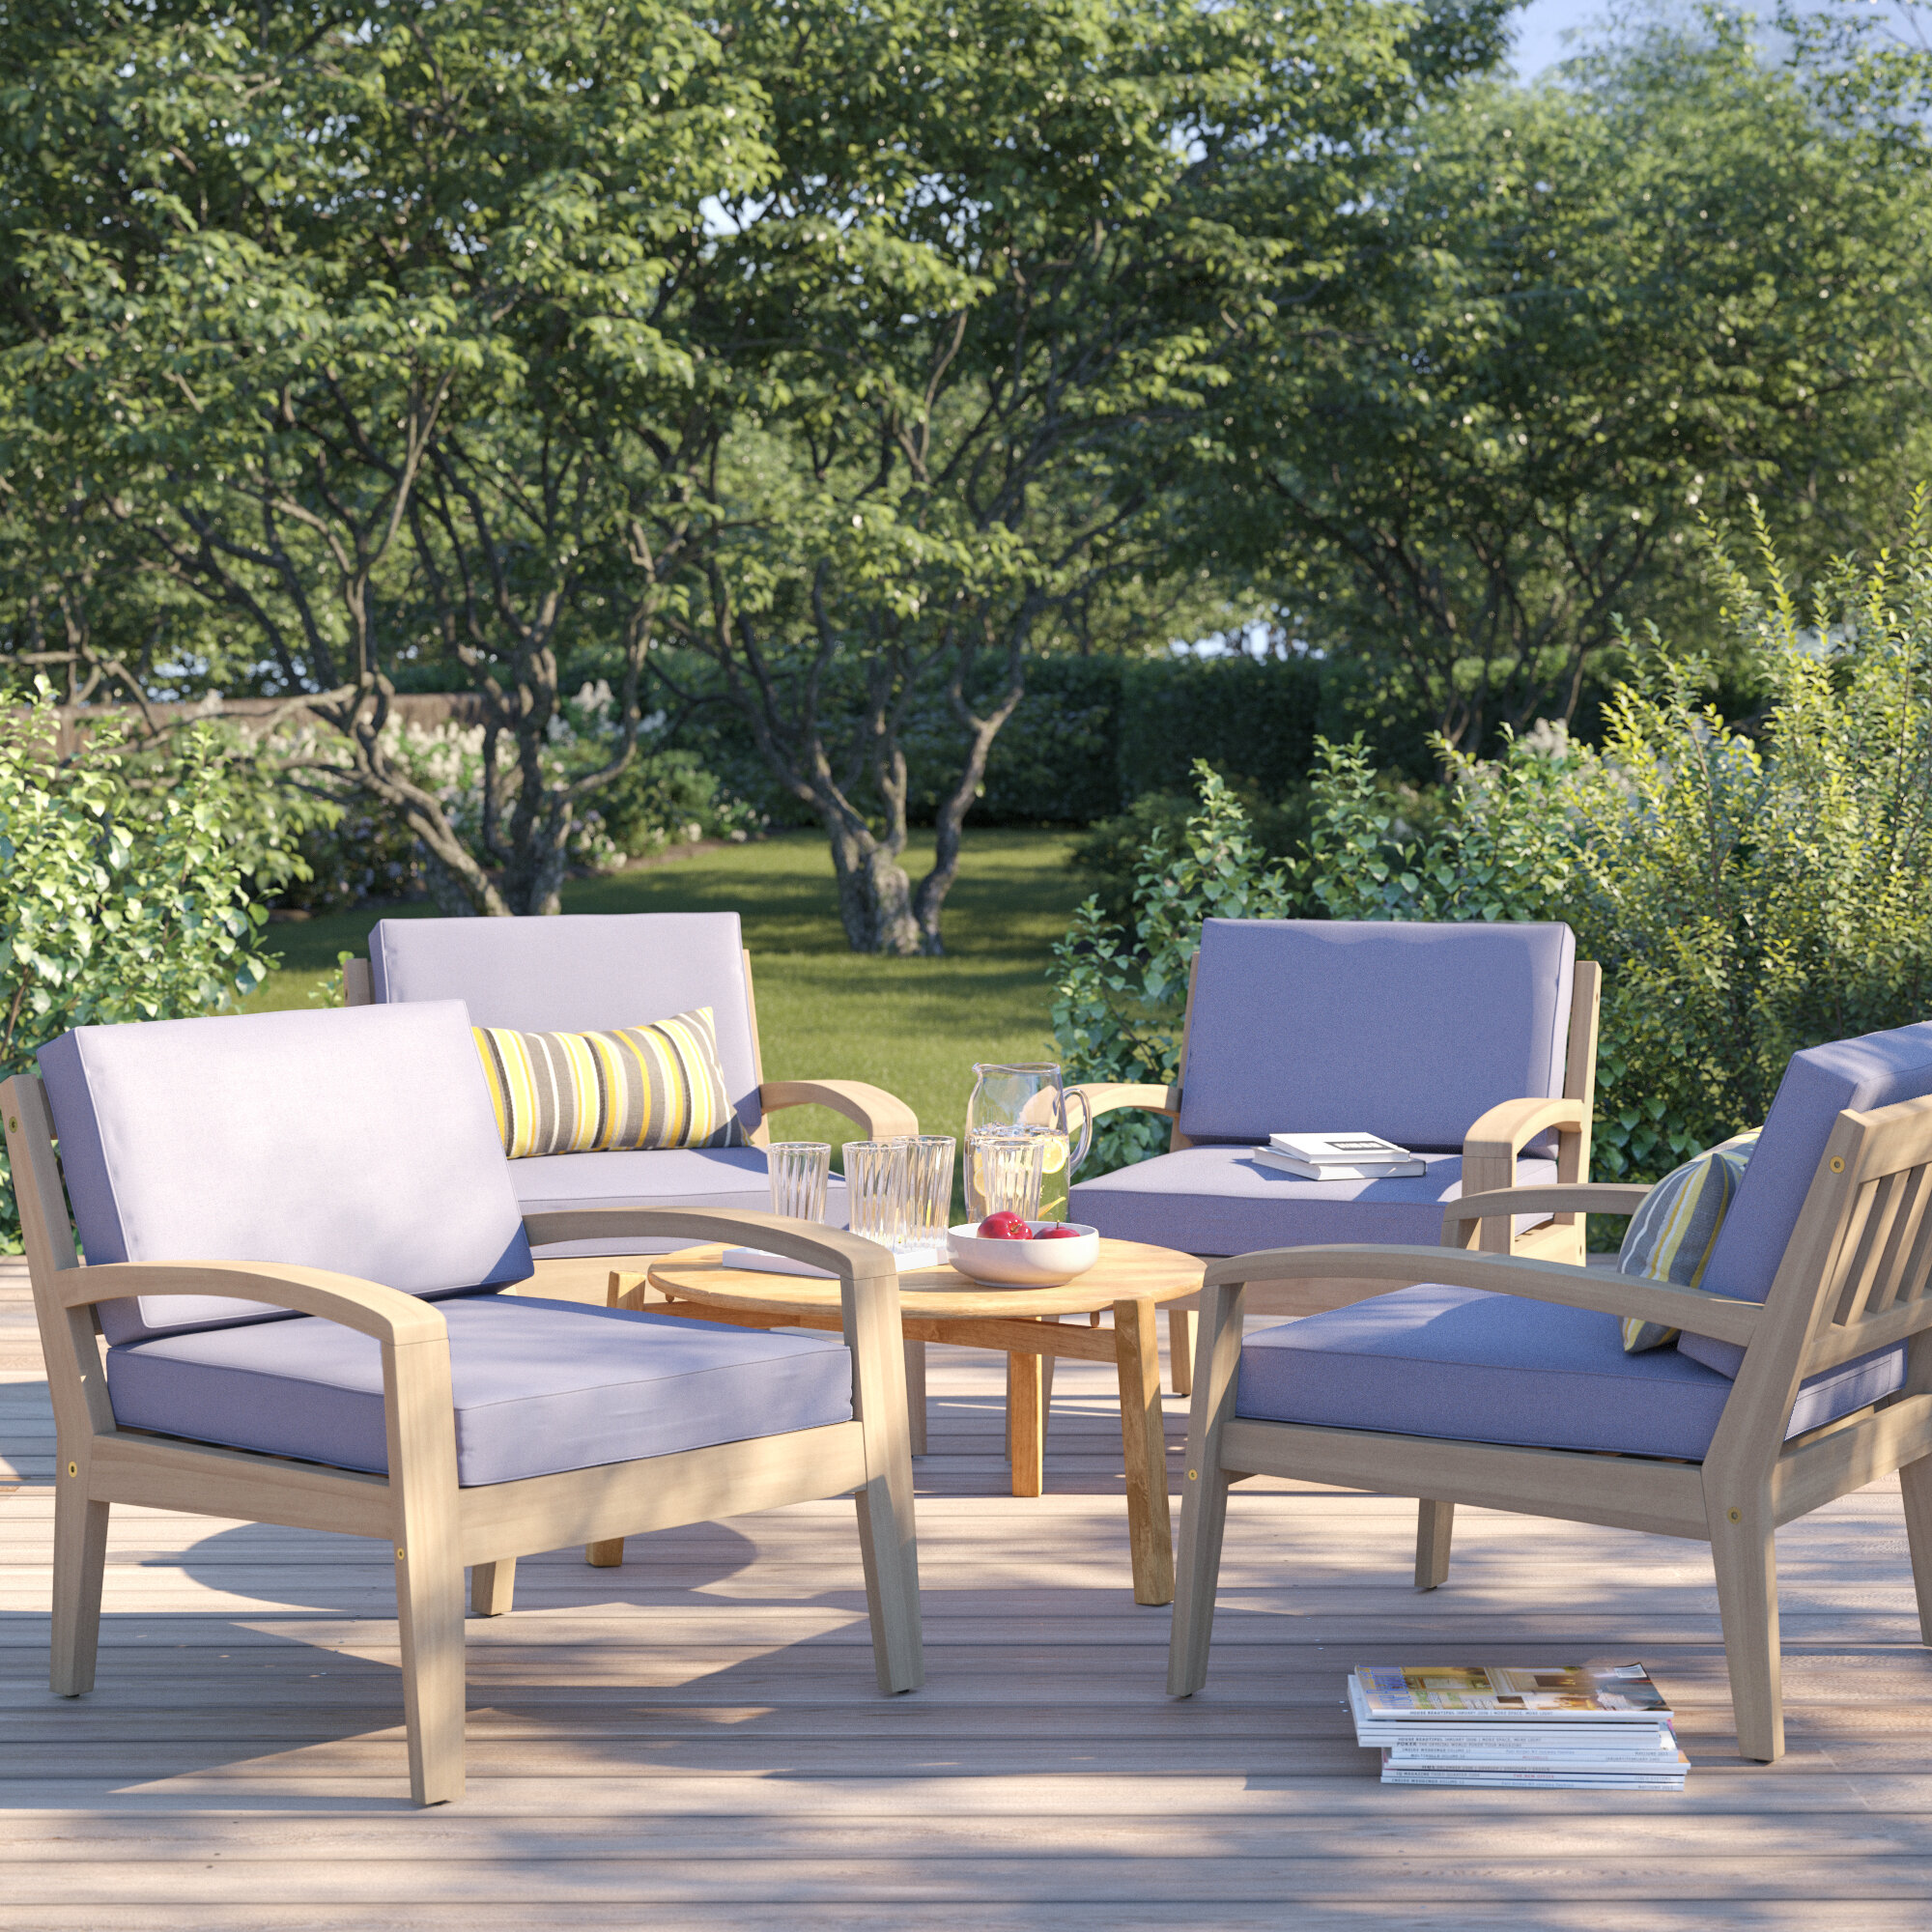 Sol 72 Outdoor Berkley Wood Frame Patio Chair with Cushions